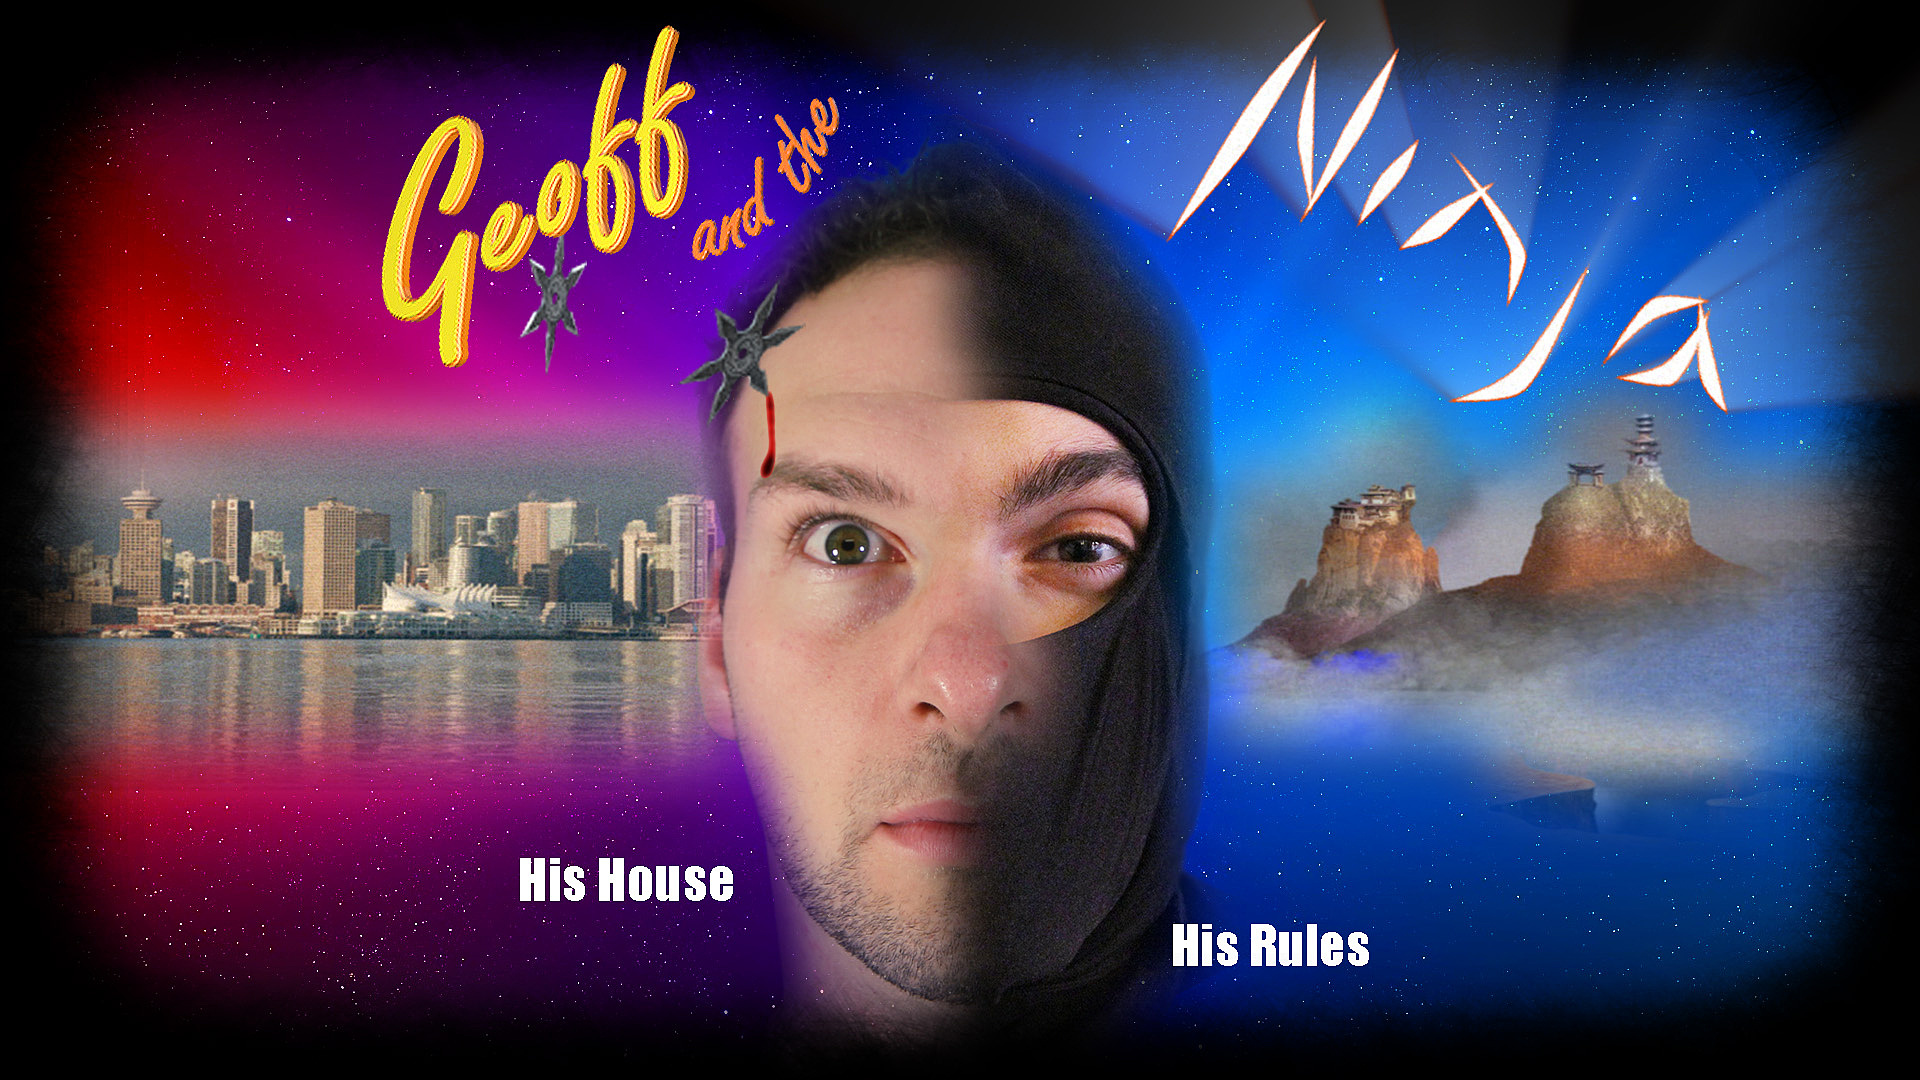 Week 4 Key It: Poster A Geoff and the Ninja